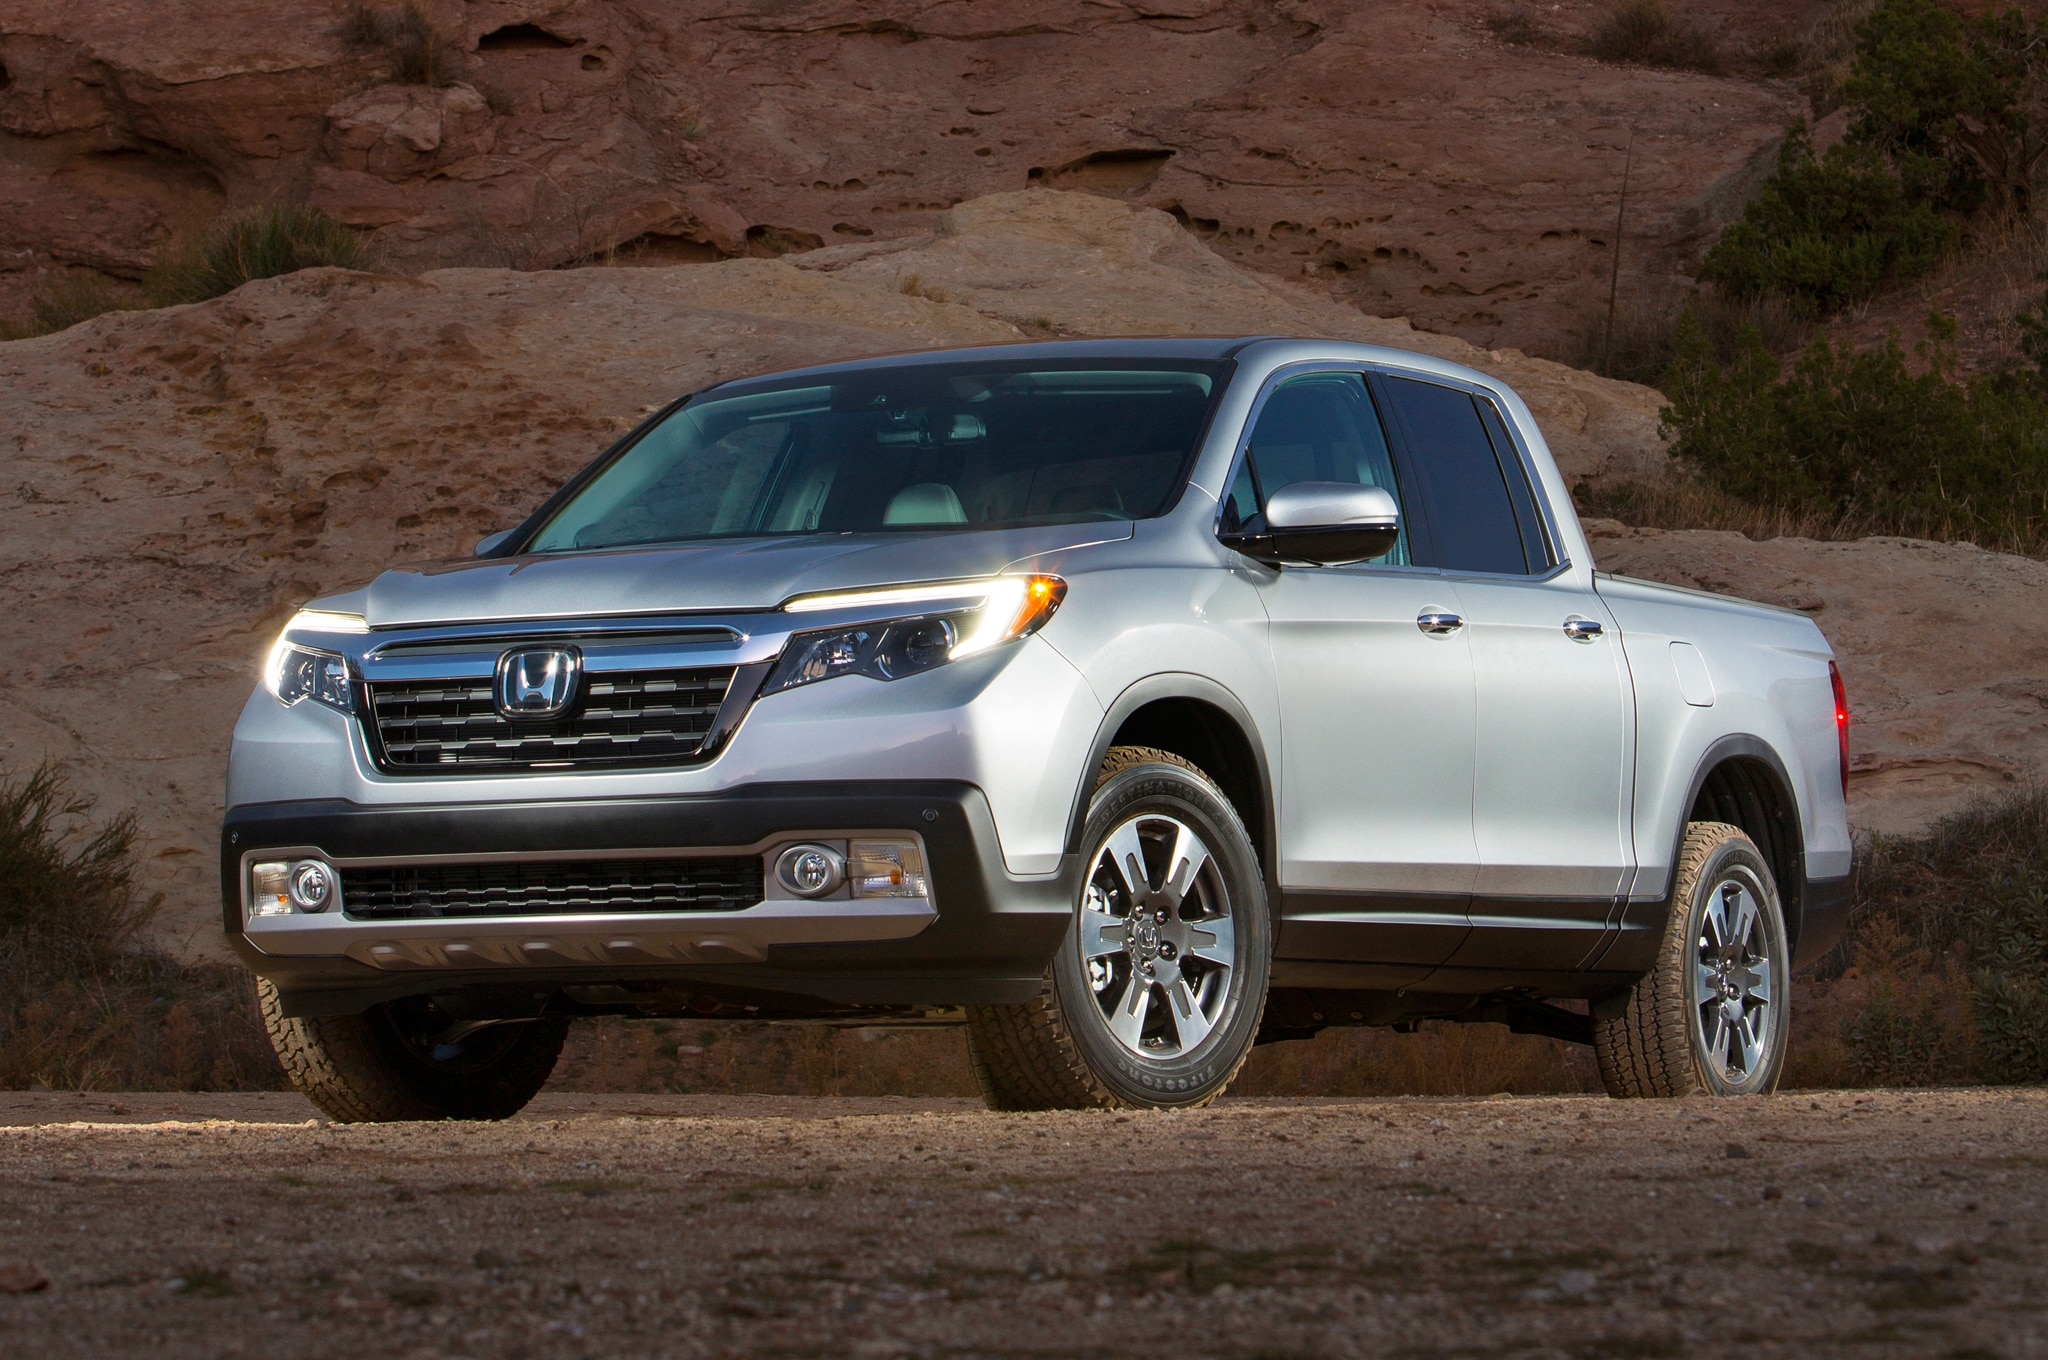 2017 honda ridgeline debuts in detroit to take on colorado. Black Bedroom Furniture Sets. Home Design Ideas